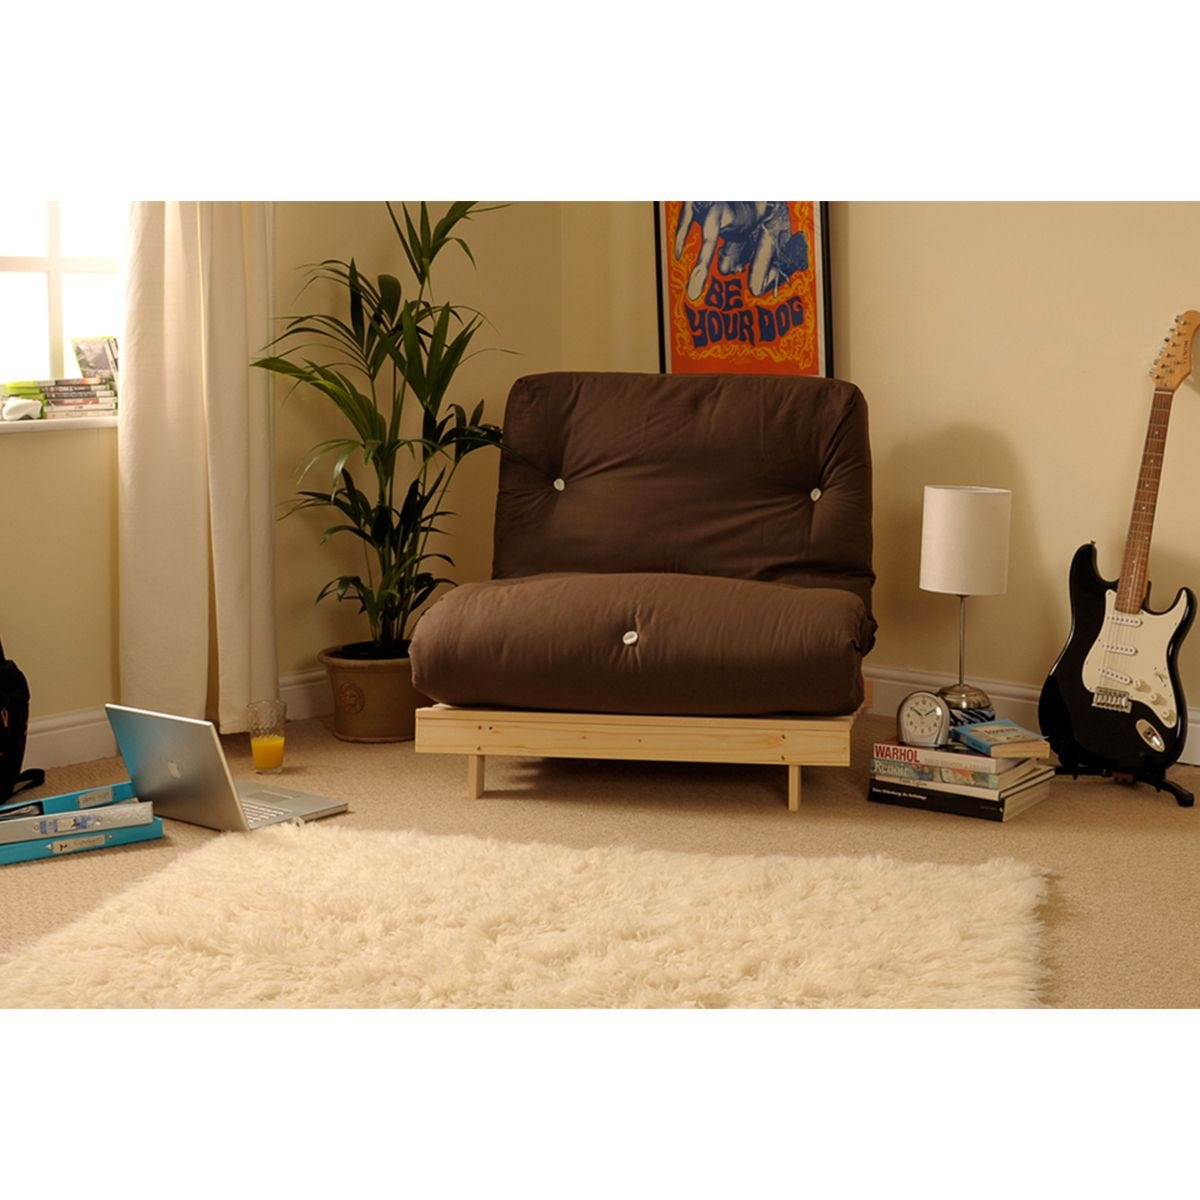 Albury Chocolate Futon Set With Tufted Mattress - Small Double